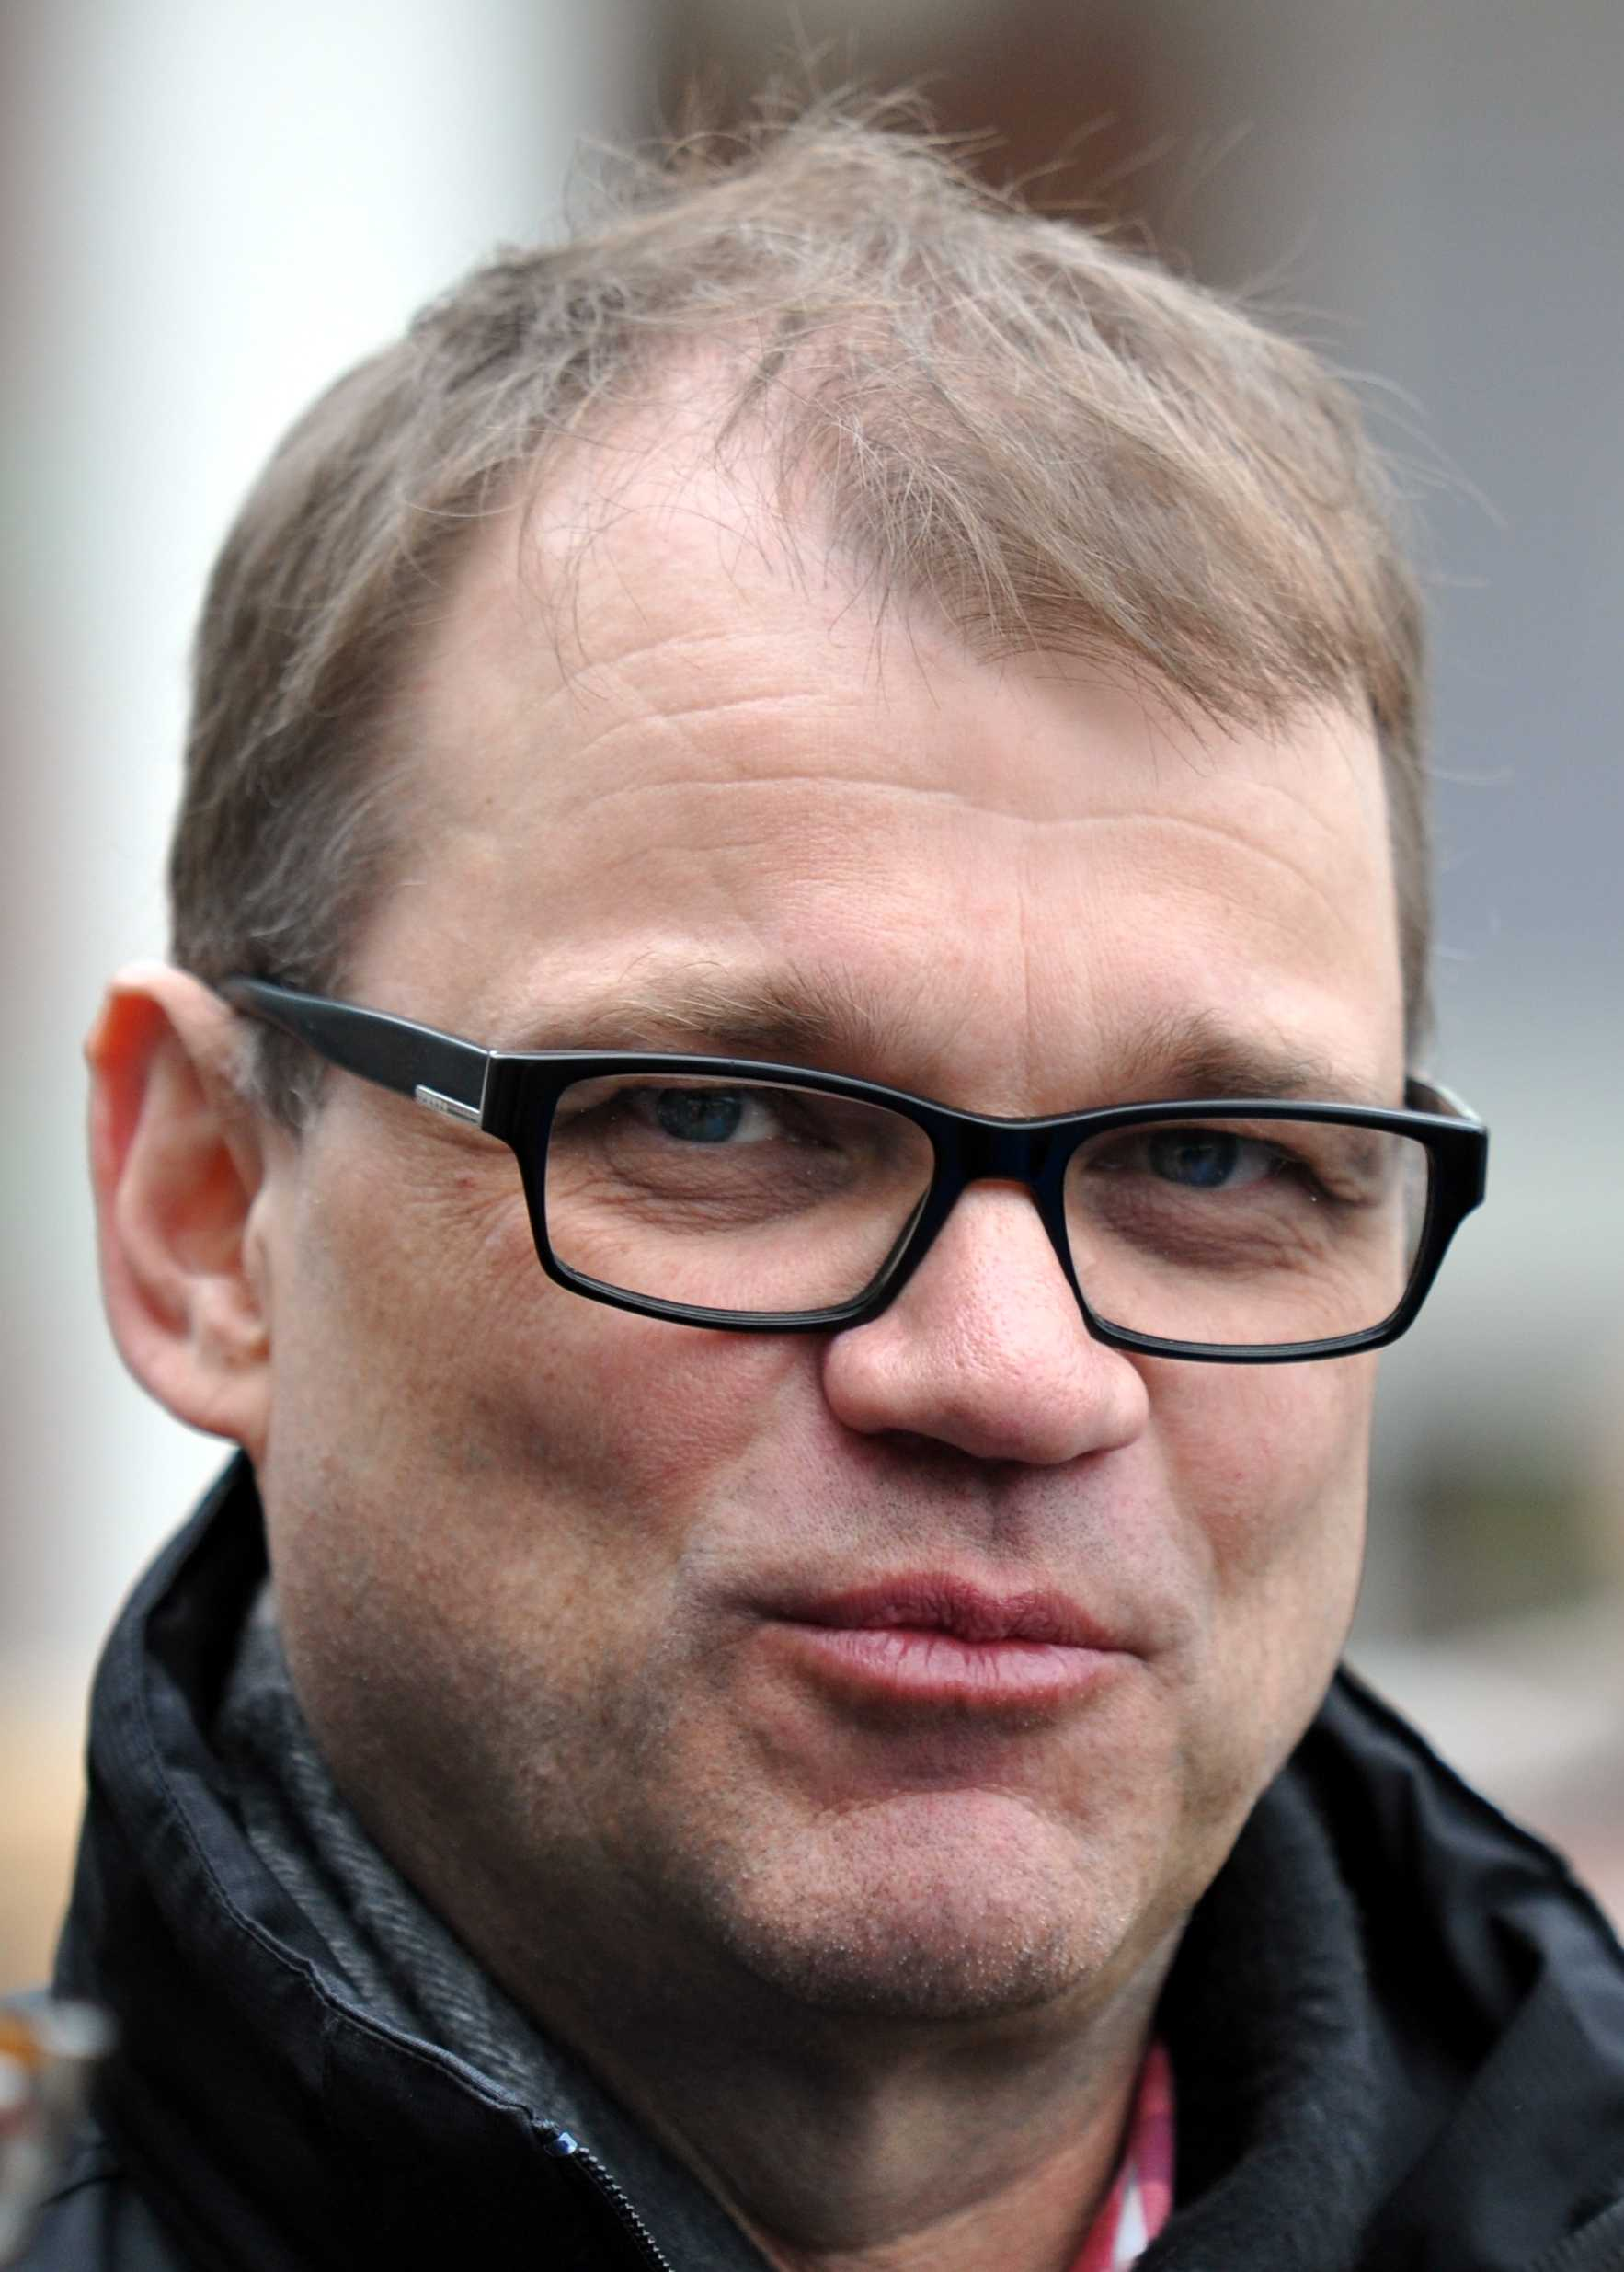 Finnish PM Offers Private Home To Refugees | Finnish